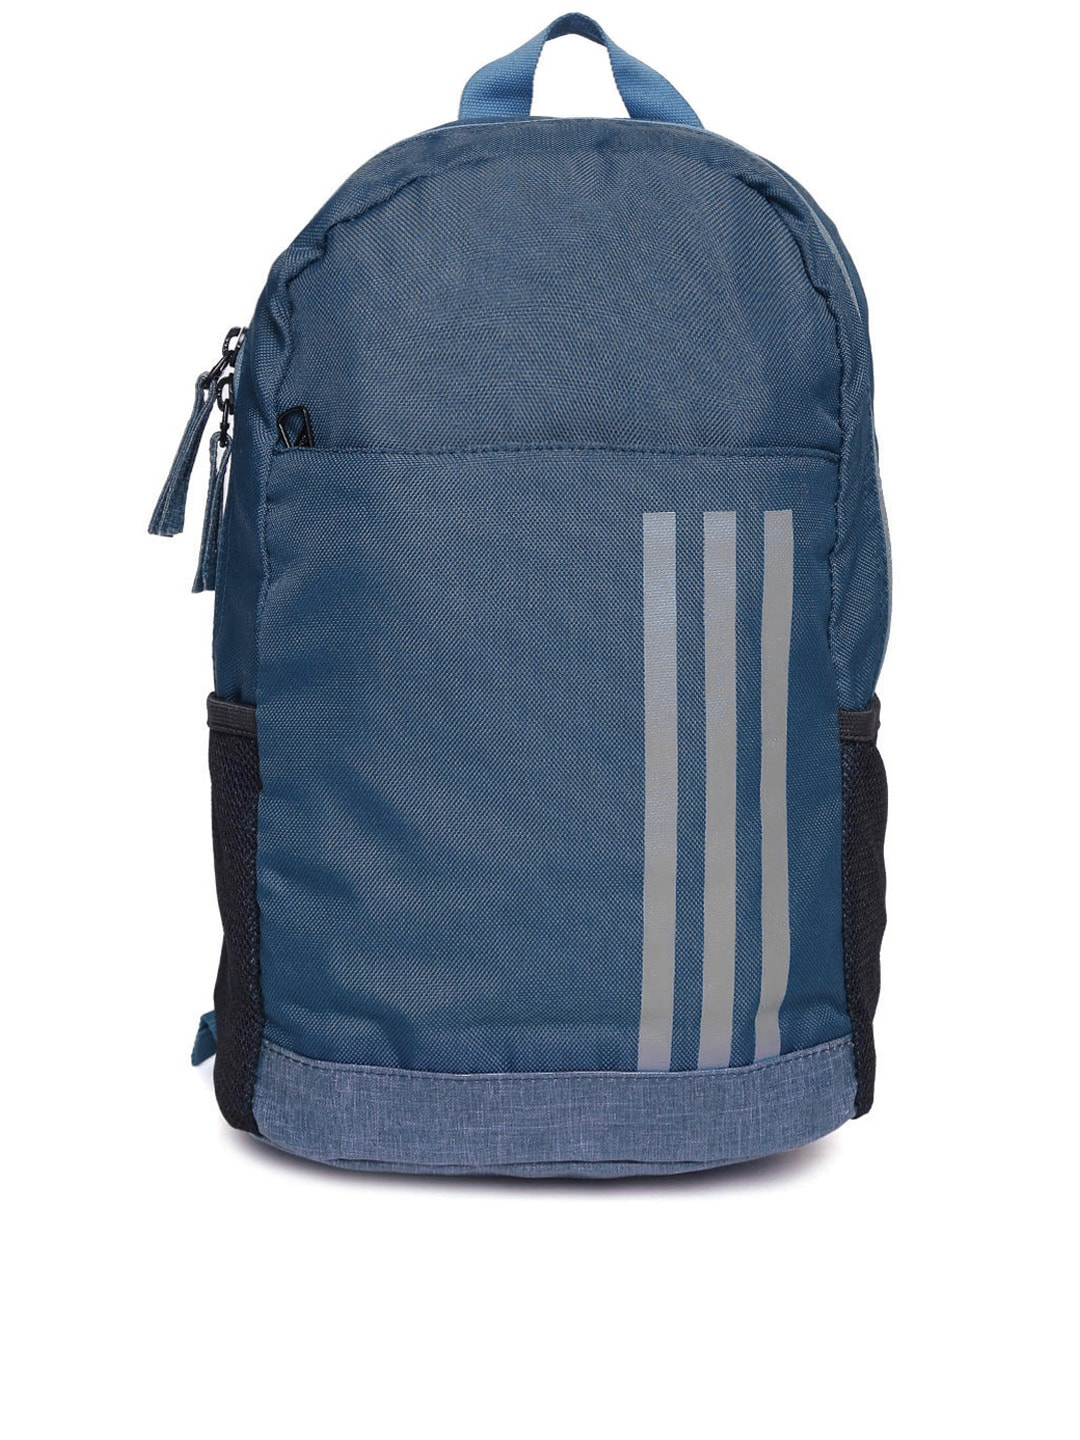 Adidas Lotus Tights Backpacks - Buy Adidas Lotus Tights Backpacks online in  India 620101a0dab29